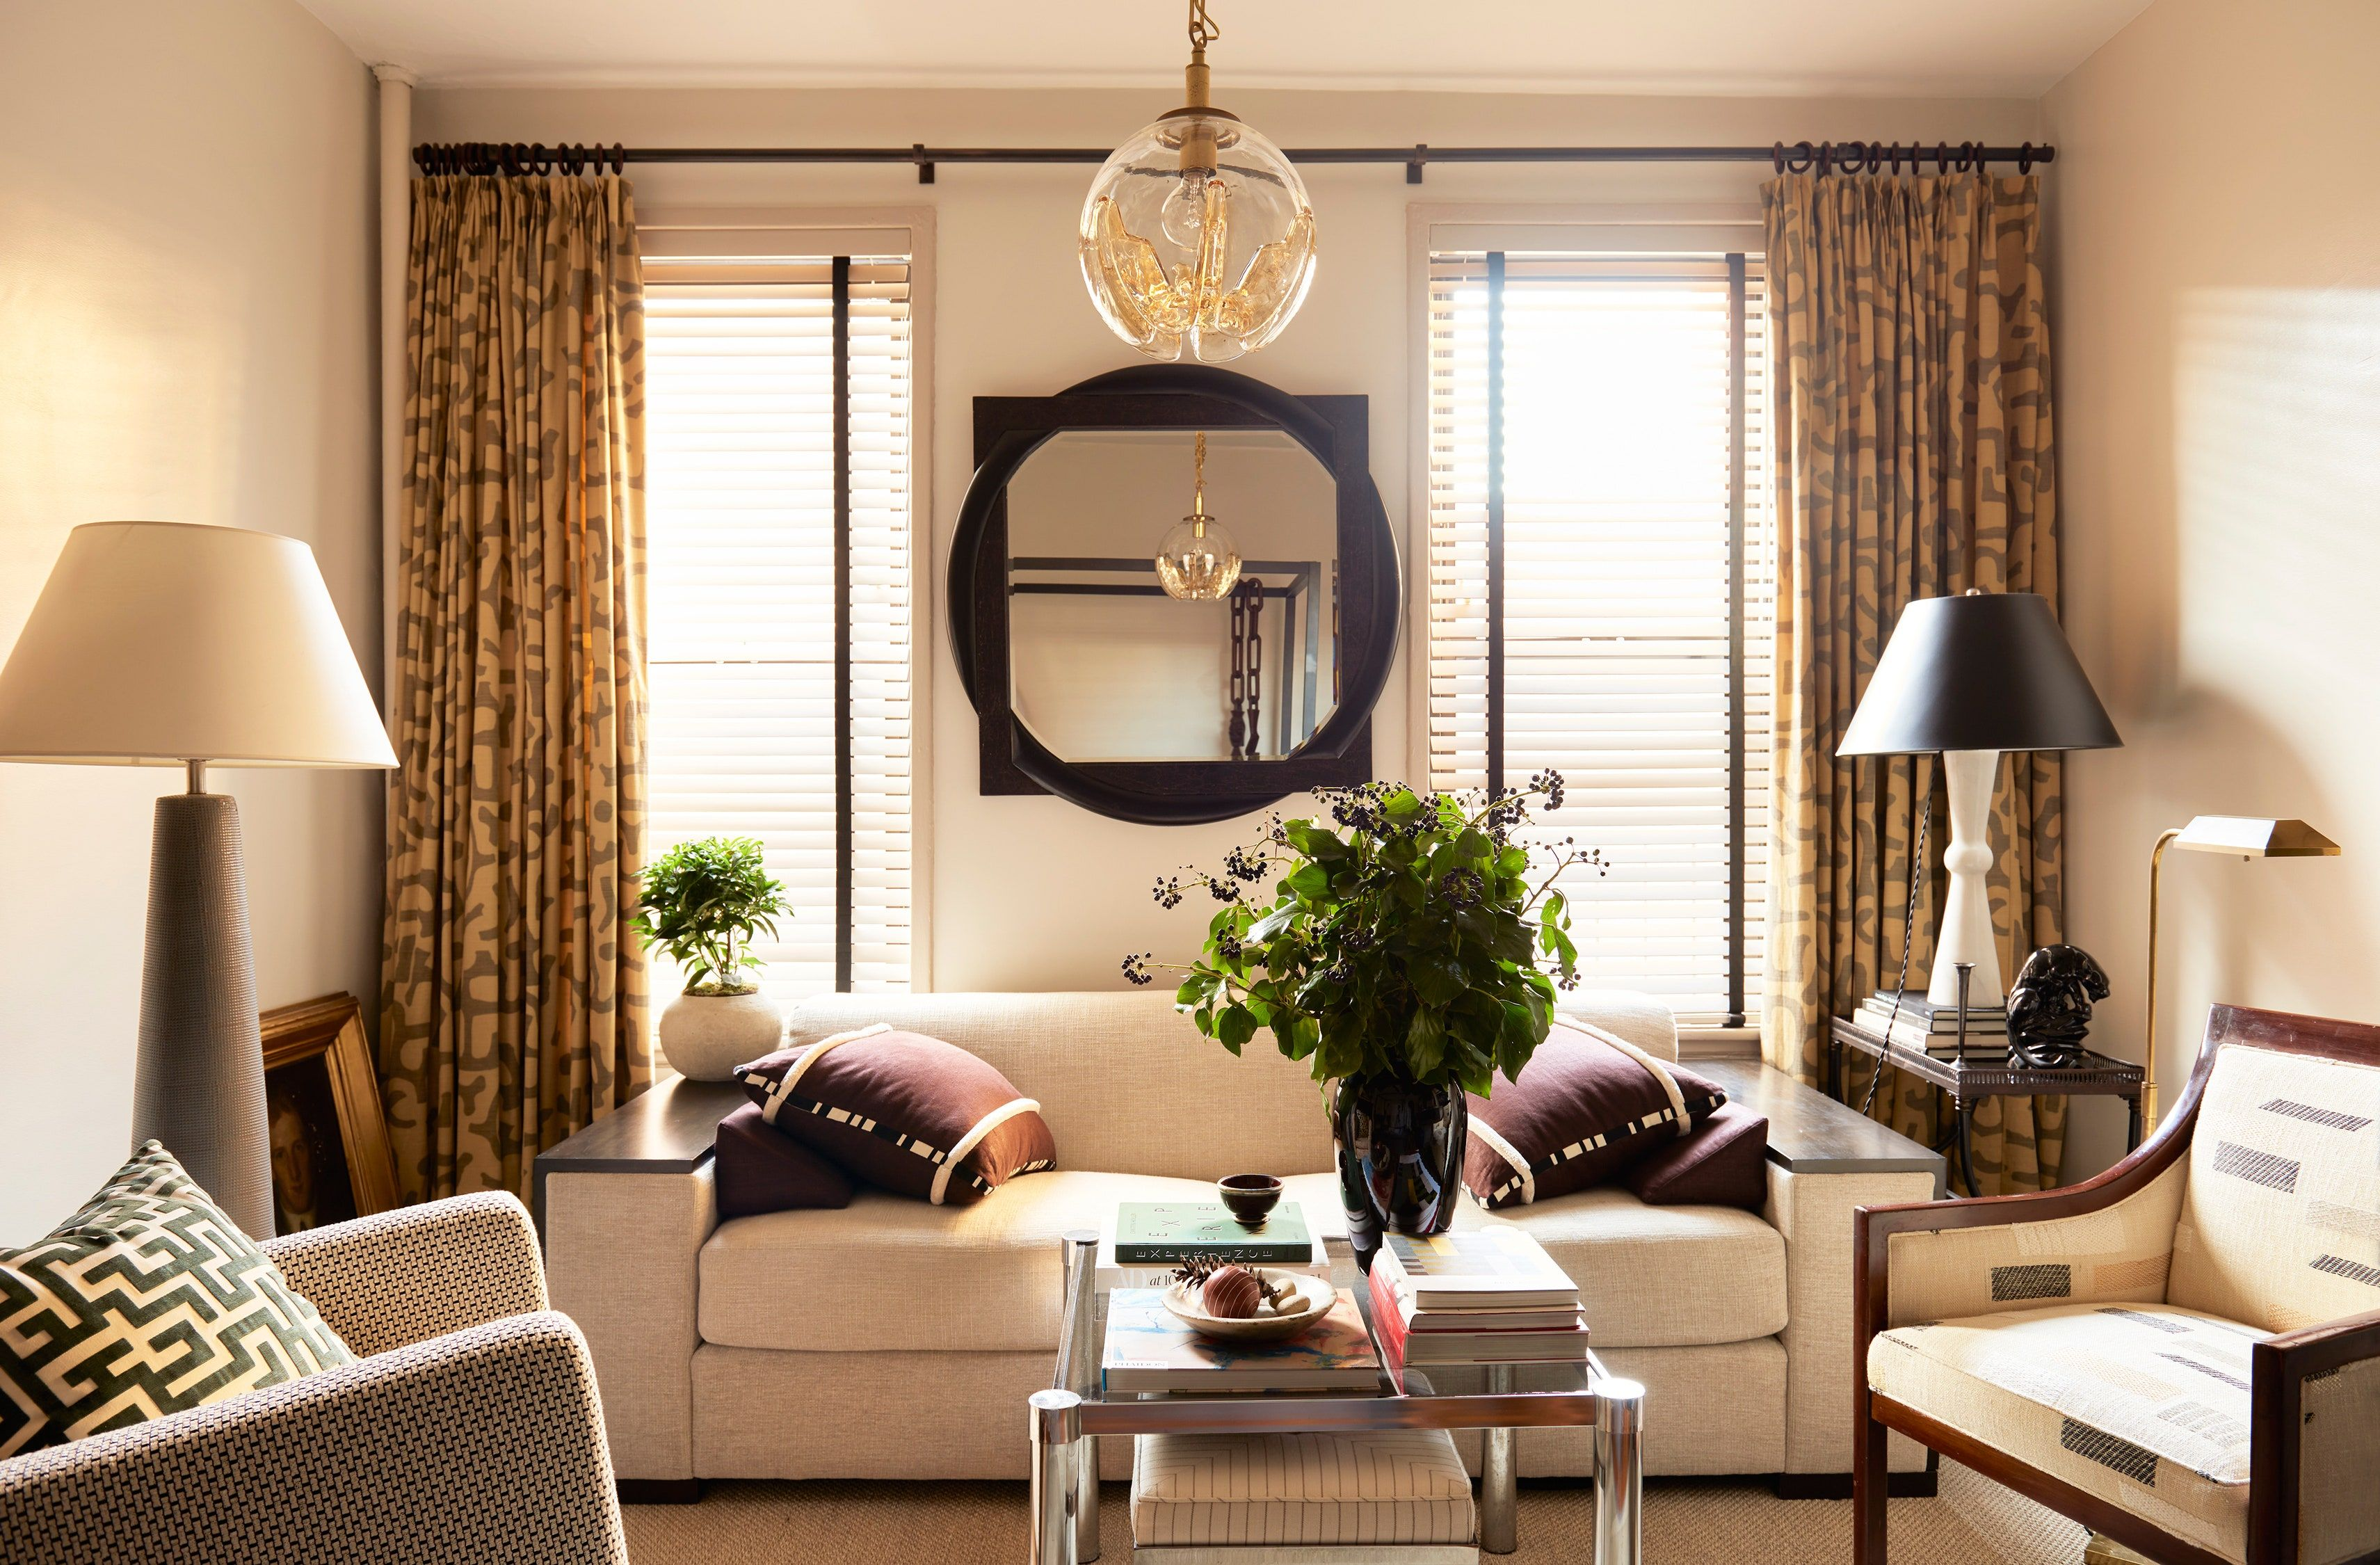 Learn One Designer's Secrets to Making a Studio Apartment